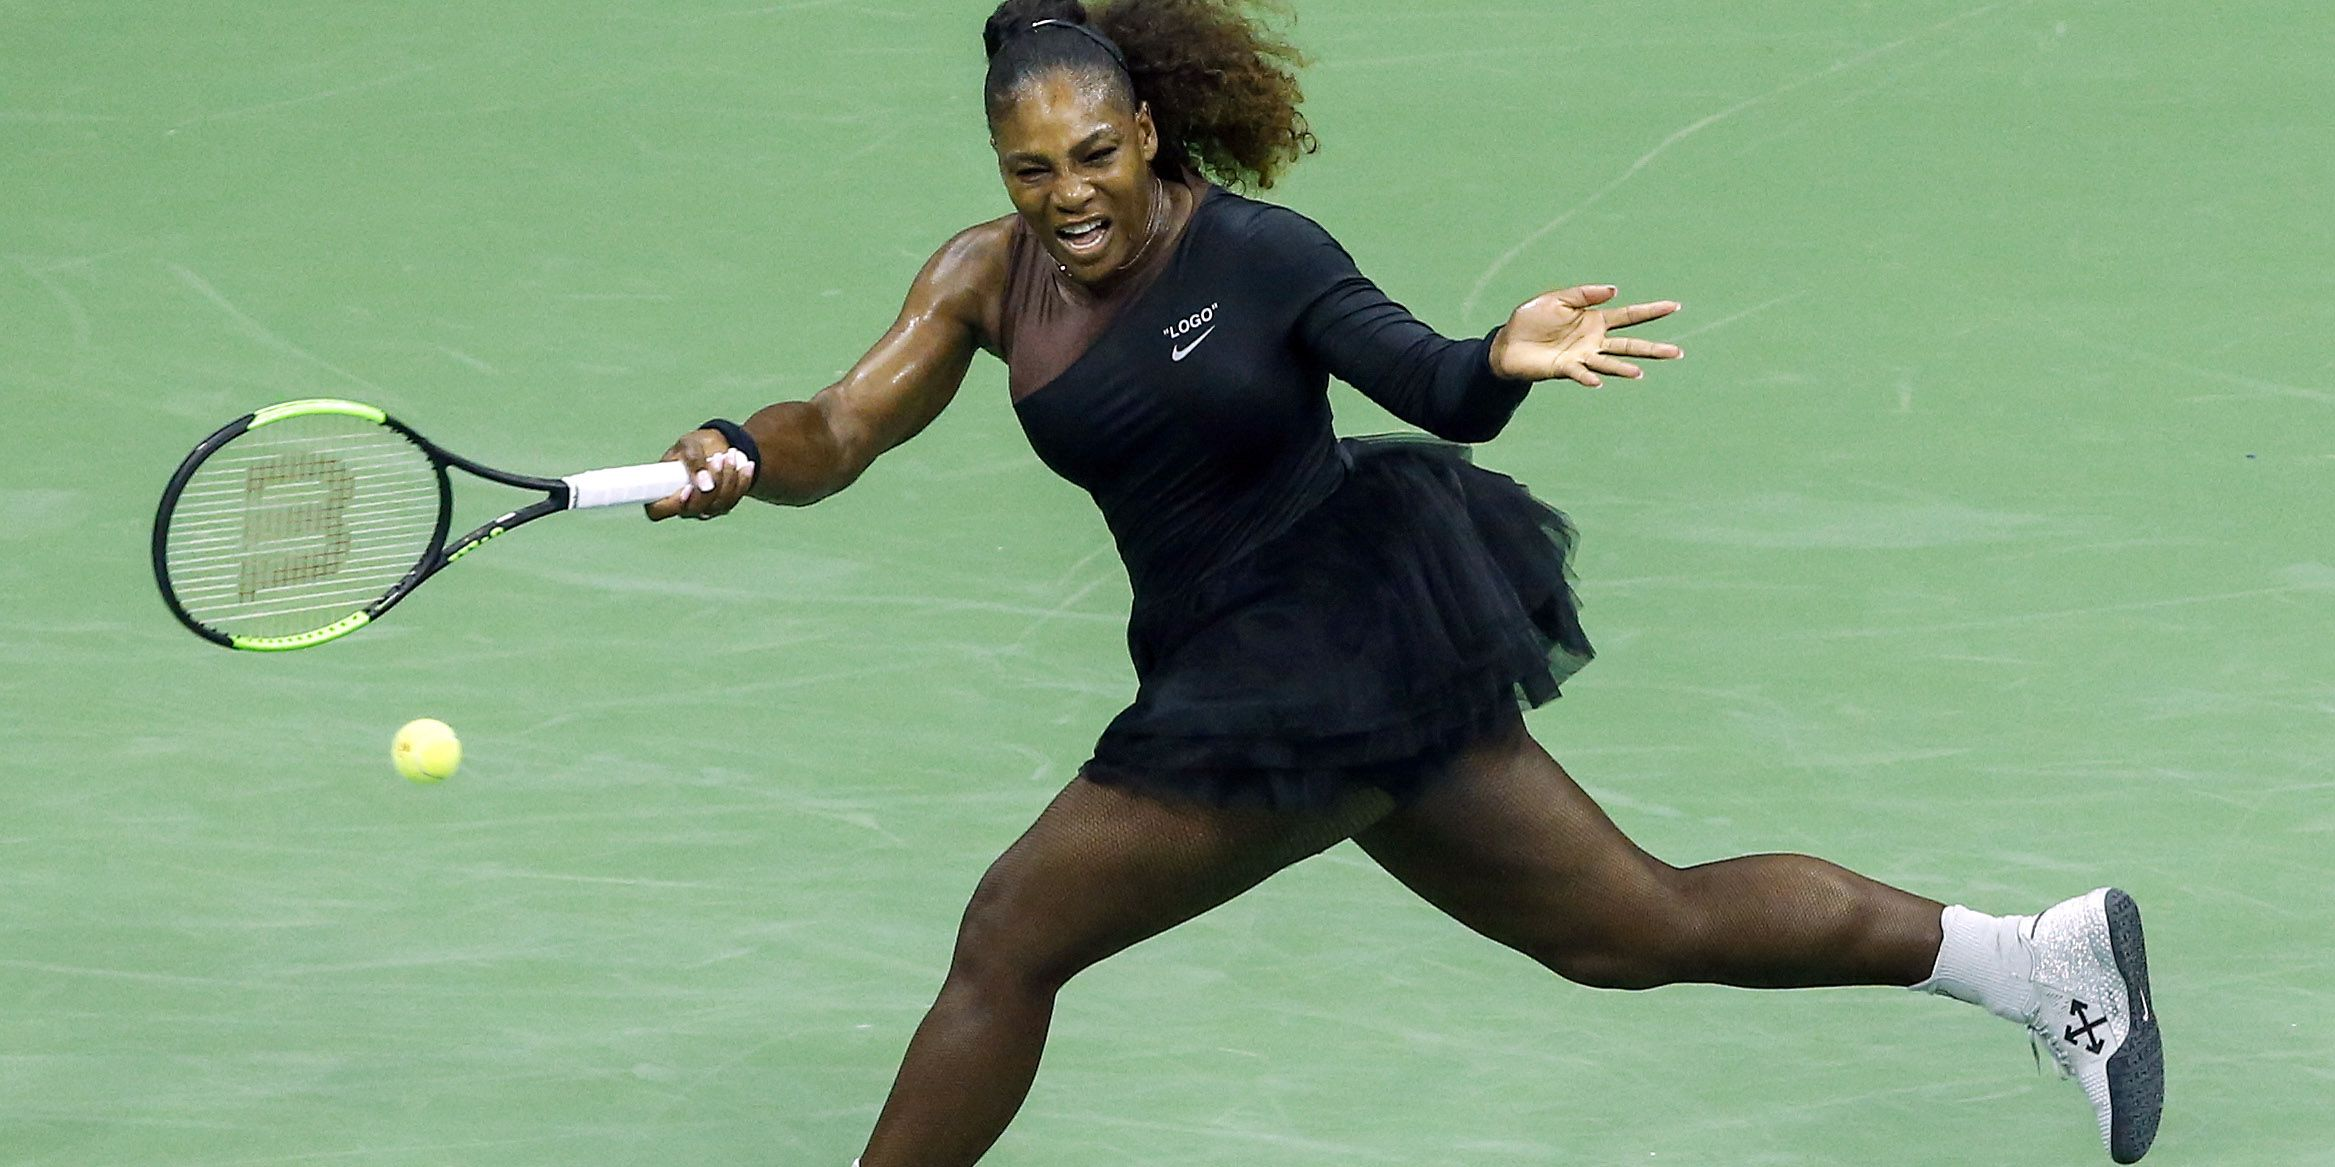 Serena Williams Won Her US Open Match